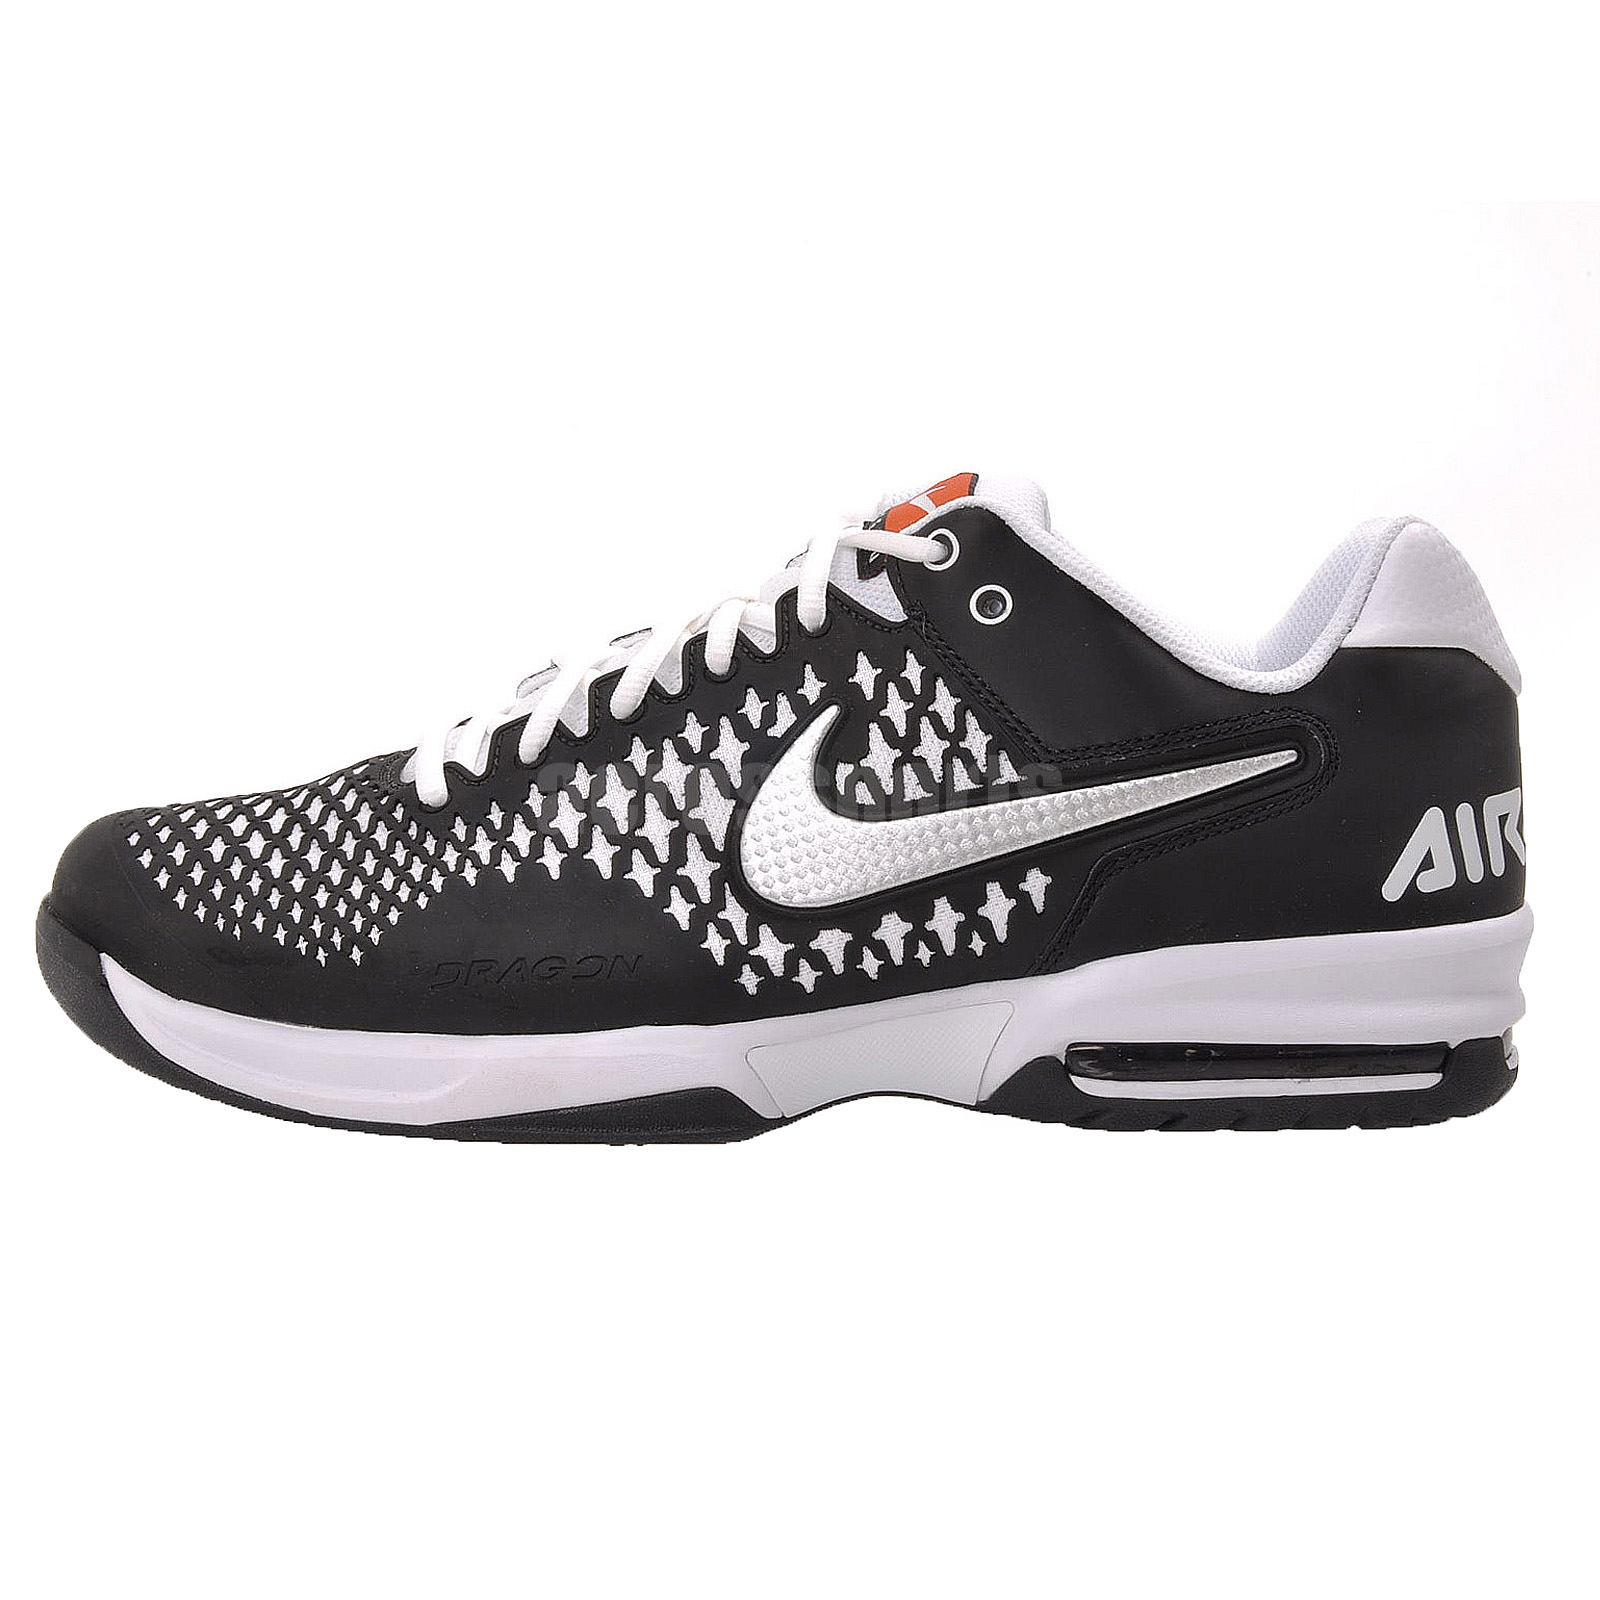 Nike Air Max Cage scarpe Court scarpe Cage Musée des impressionnismes Giverny 1c1c88